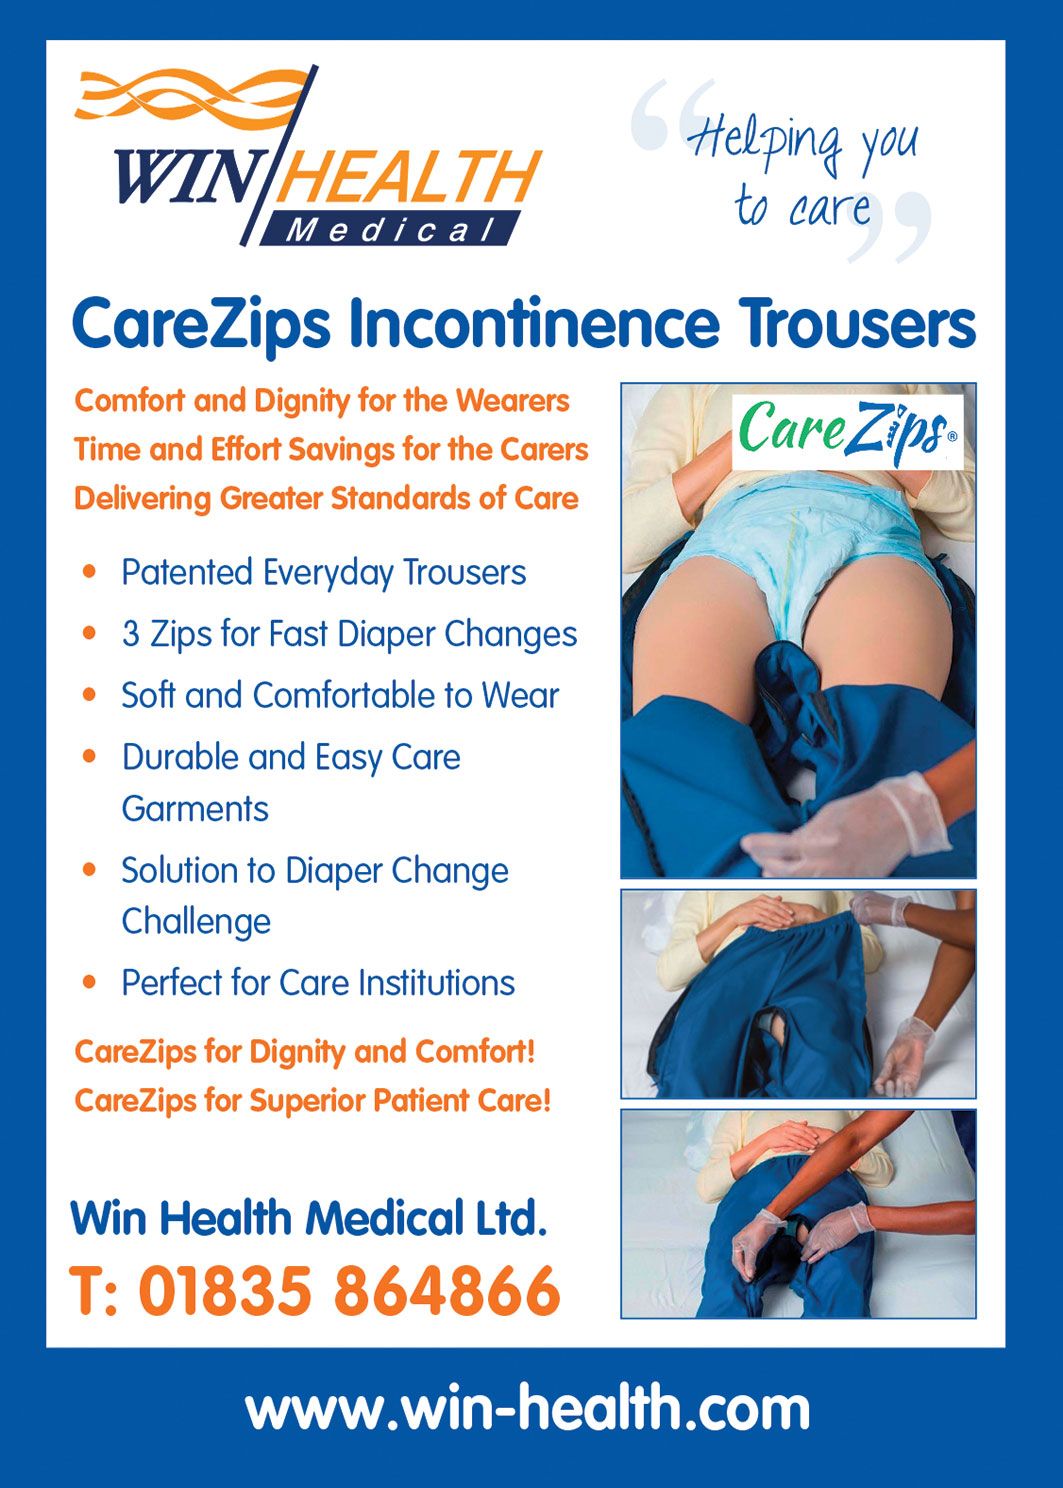 Win Health Medical CareZips Incontinence Trousers